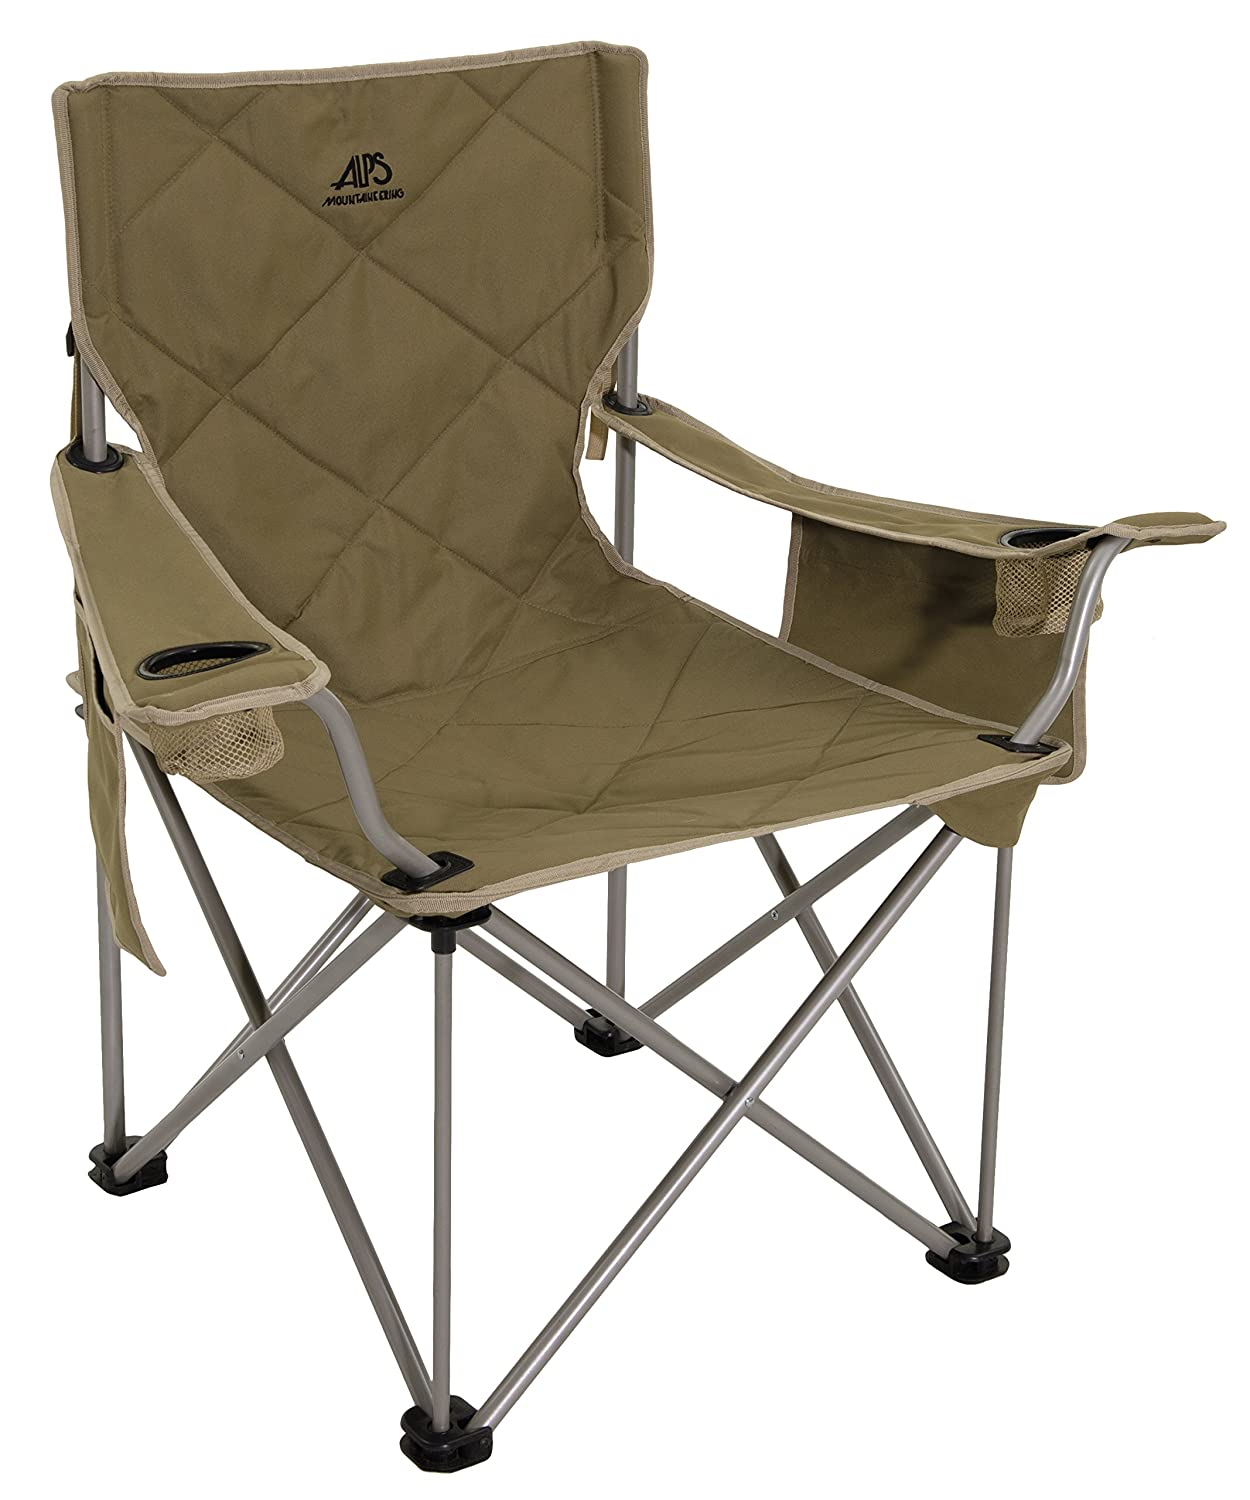 Beach Chairs For Heavy Person What Are The Best Oversized Beach Chairs For Heavy People